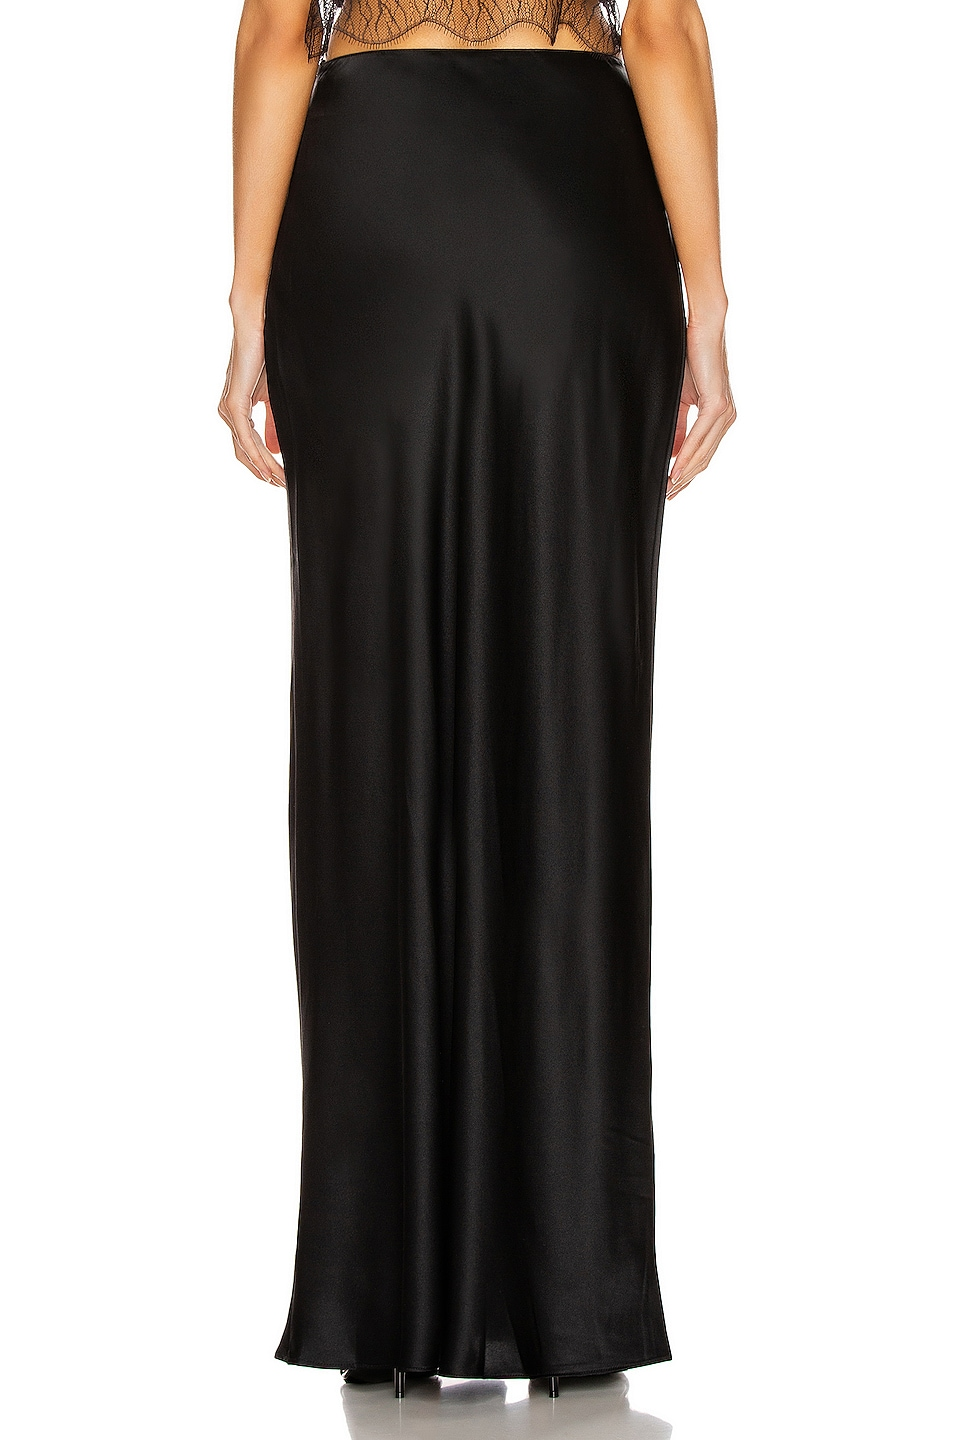 Image 3 of SABLYN Isabella Slit Skirt in Black